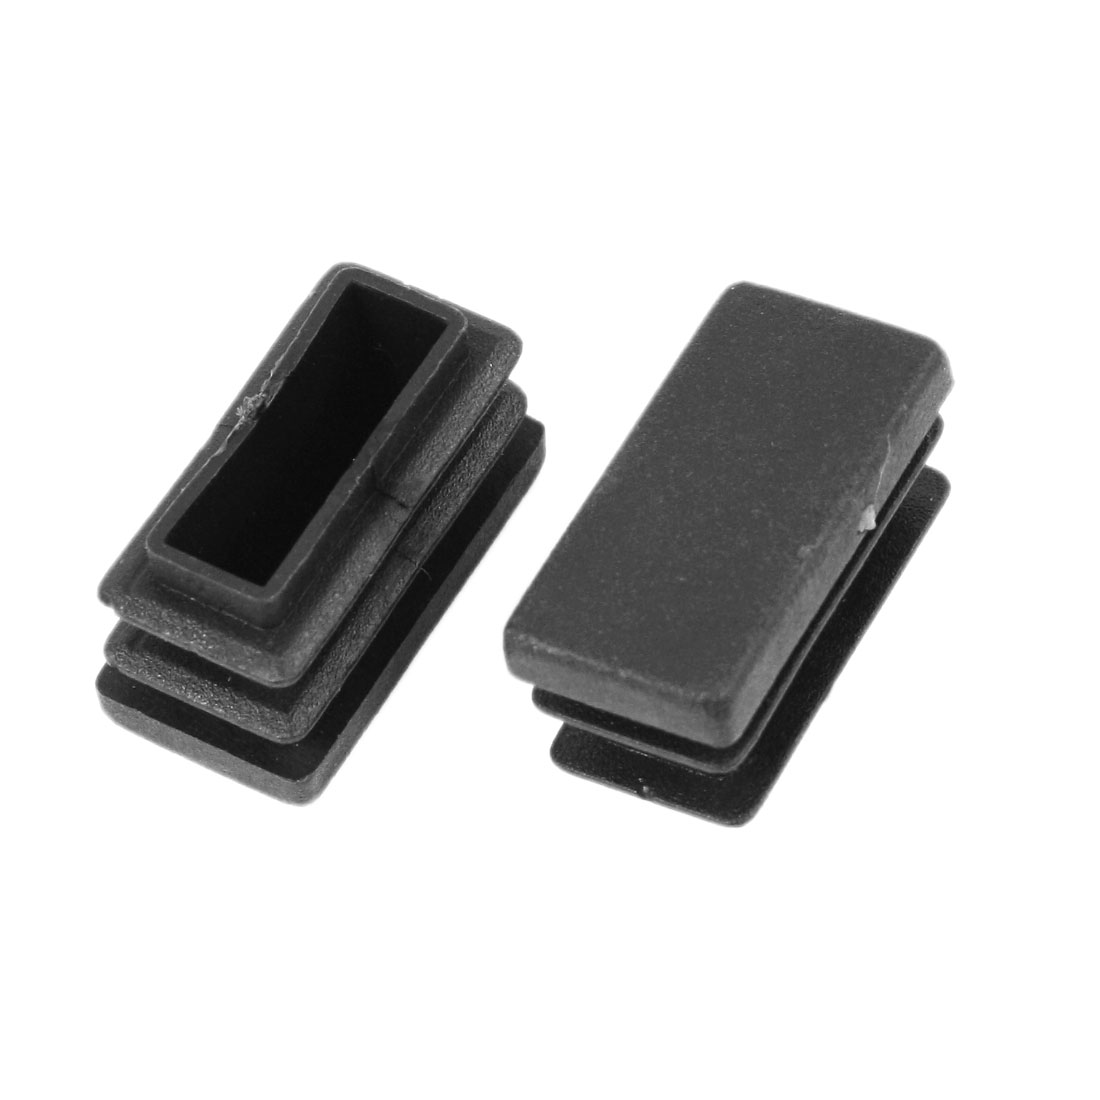 2 Pieces 13mm x 26mm Plastic Blanking End Caps Rectangle Tubing Tube Pipe Insert